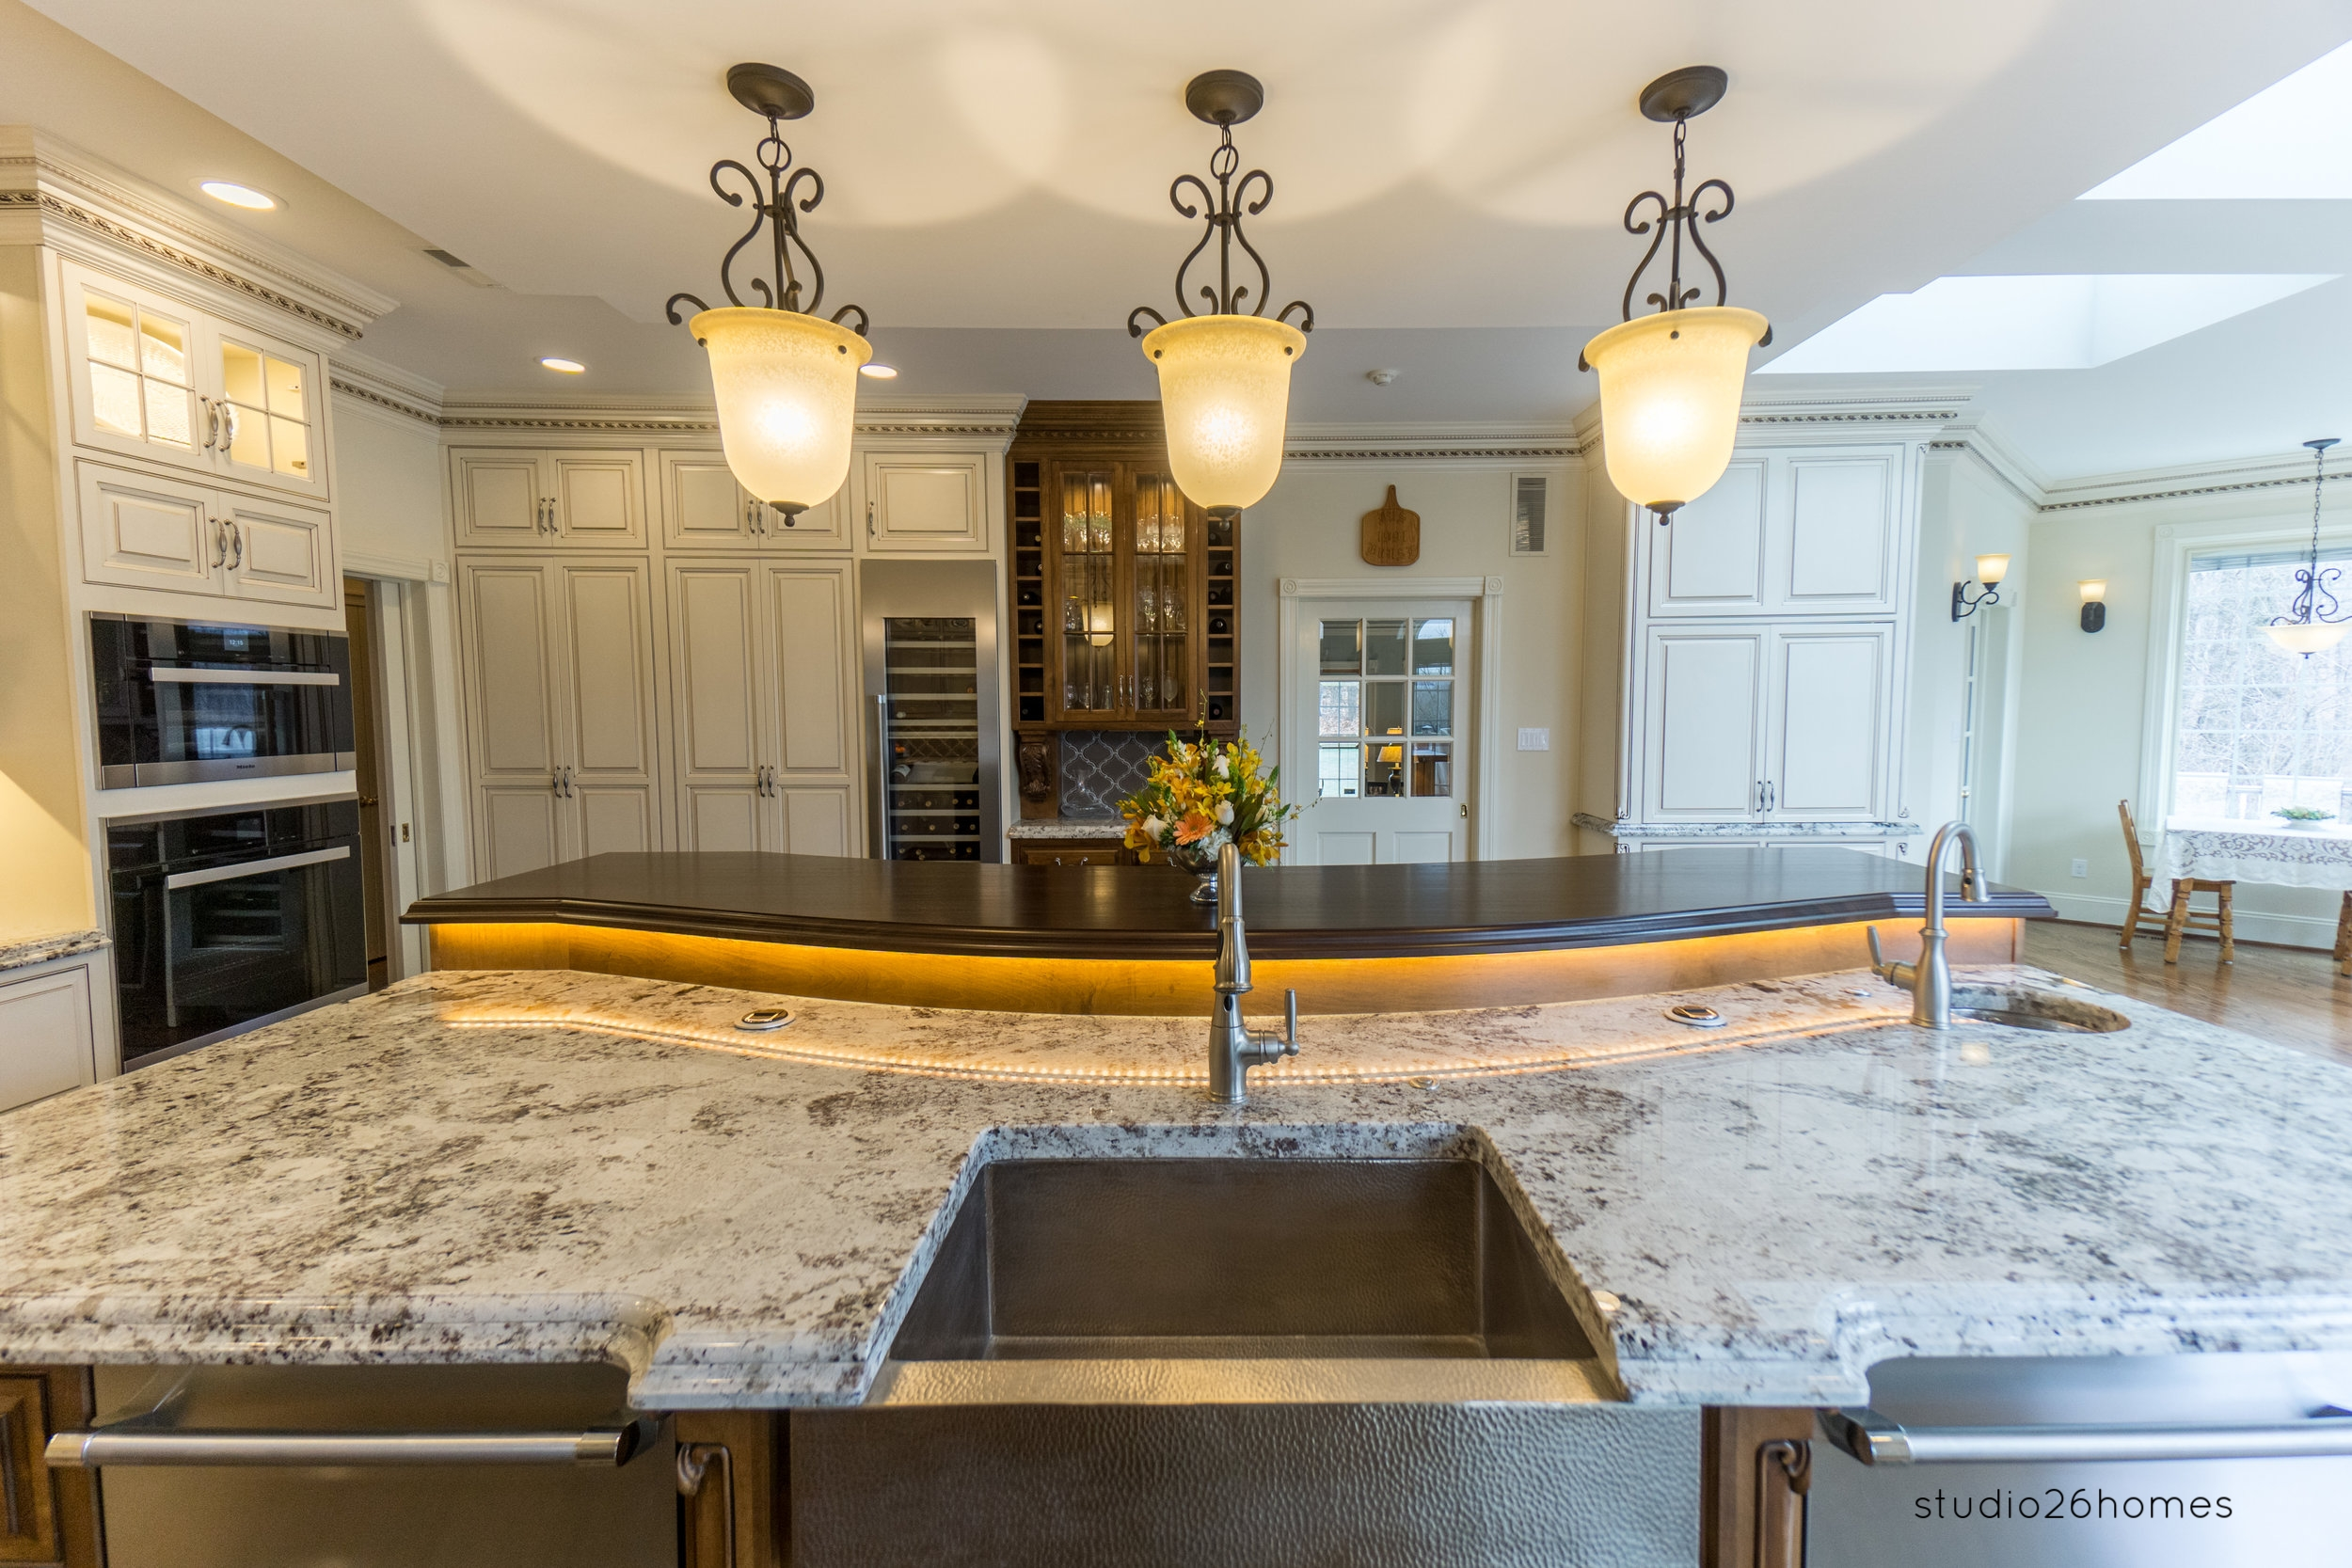 An Introduction To Significant Elements For Kitchen Cabinets